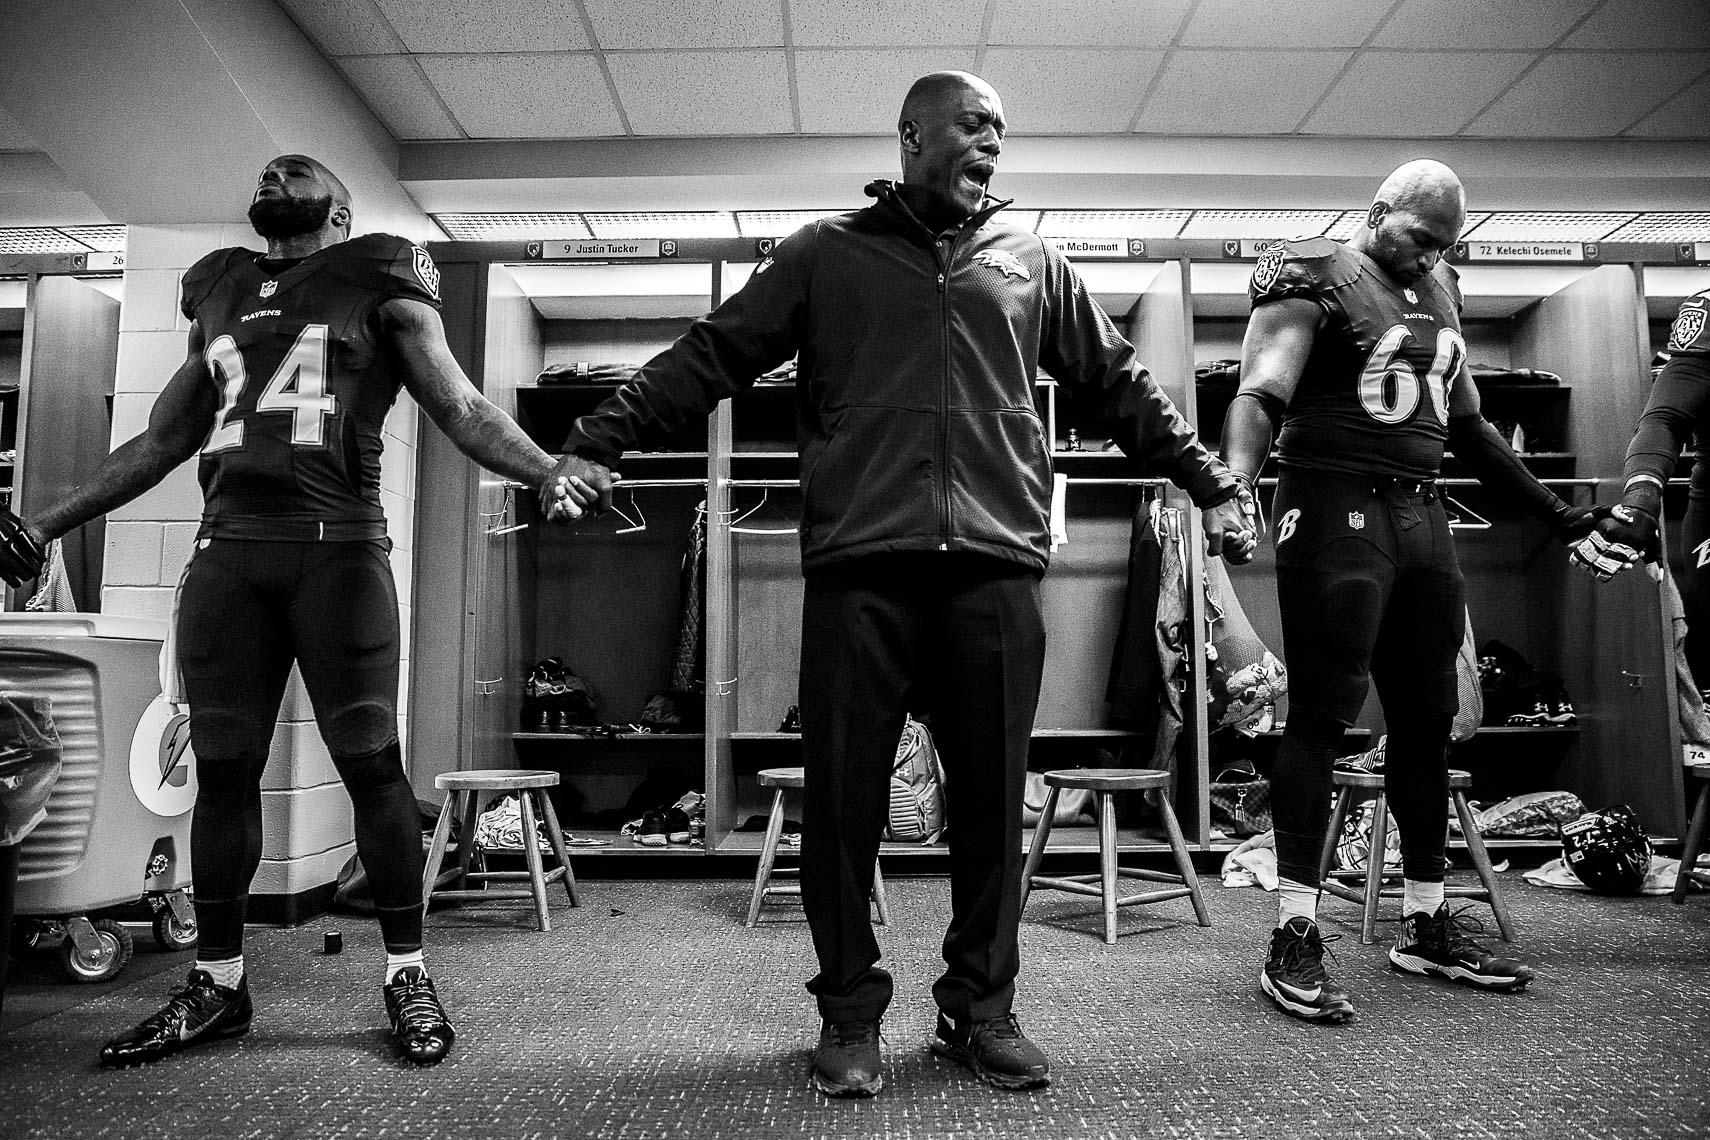 teamchaplain20_ NFL behind the scenes Baltimore Ravens team chaplain Johnny Shelton by Baltimore  area photojournalist reportage documentary sports photographer